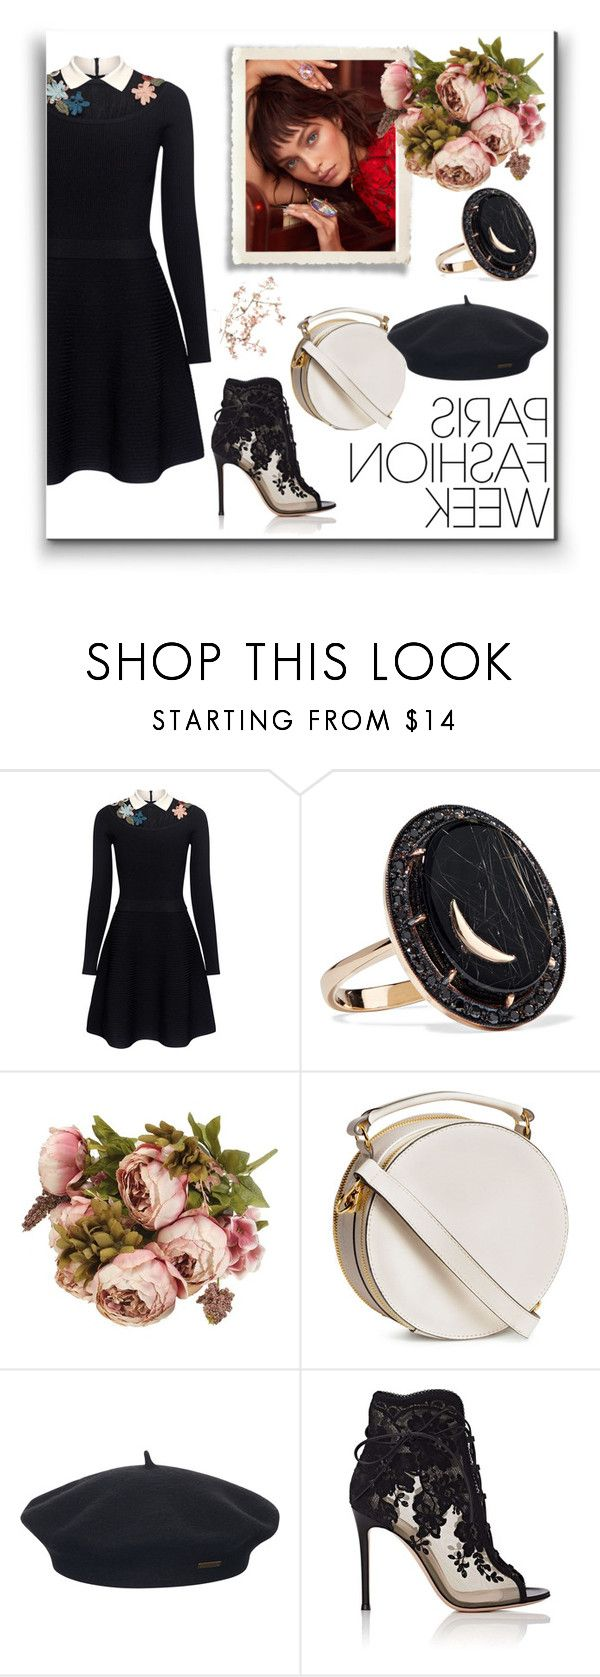 """Take this heart, leave it or break it all apart"" by holography ❤ liked on Polyvore featuring RED Valentino, Andrea Fohrman, Element, Gianvito Rossi, Canopy Designs, parisfashionweek and Packandgo"